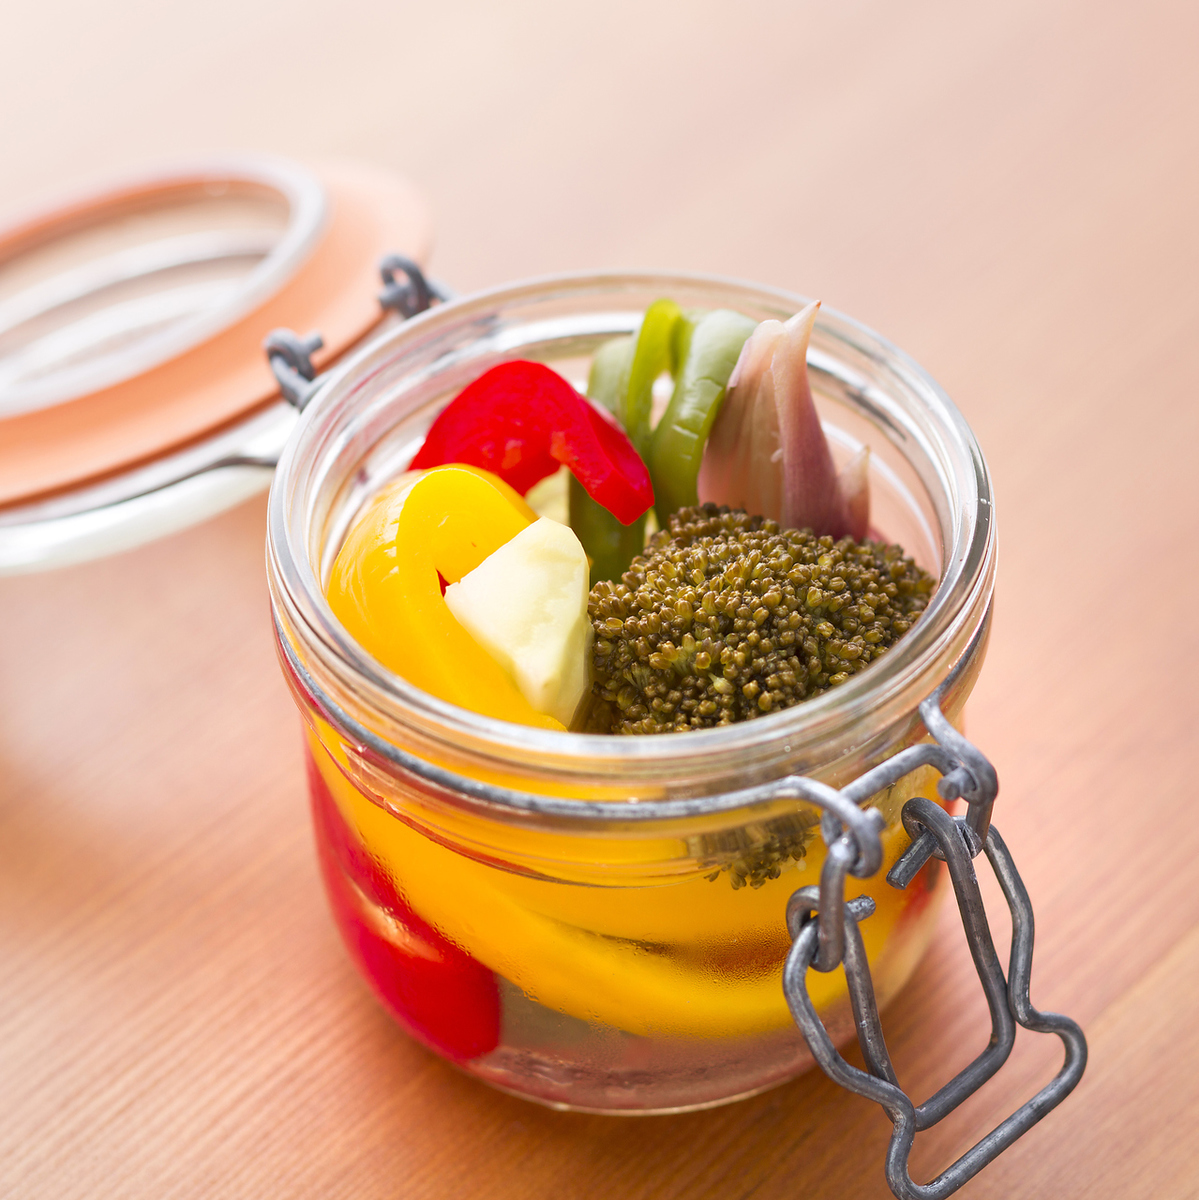 Pickled vegetables pickles